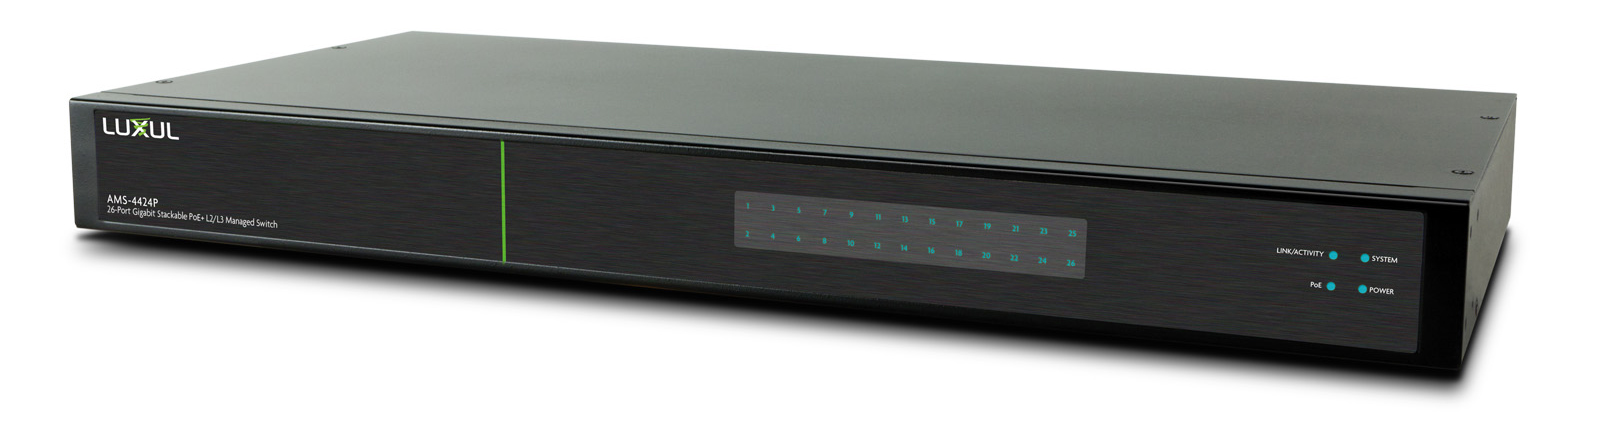 Network switches for just add power hdmi over ip systems